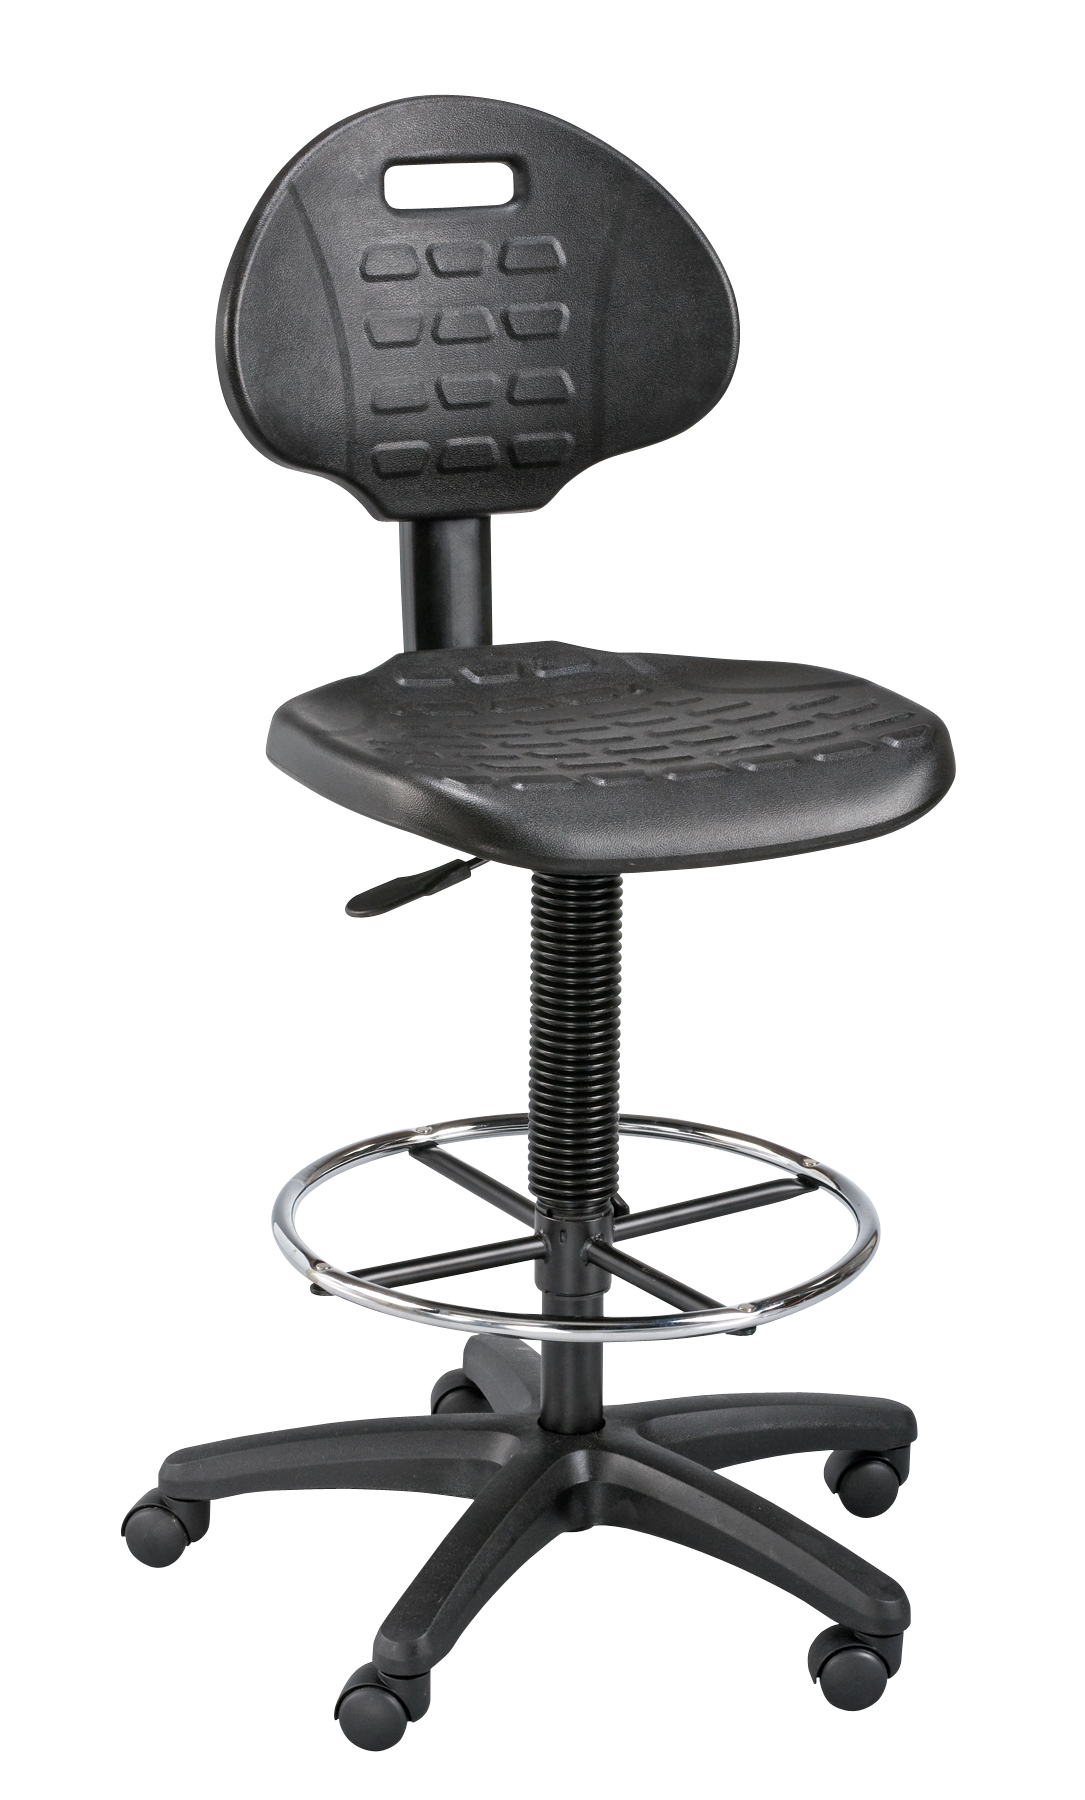 Superb Drafting Supplies Equipment Caraccident5 Cool Chair Designs And Ideas Caraccident5Info